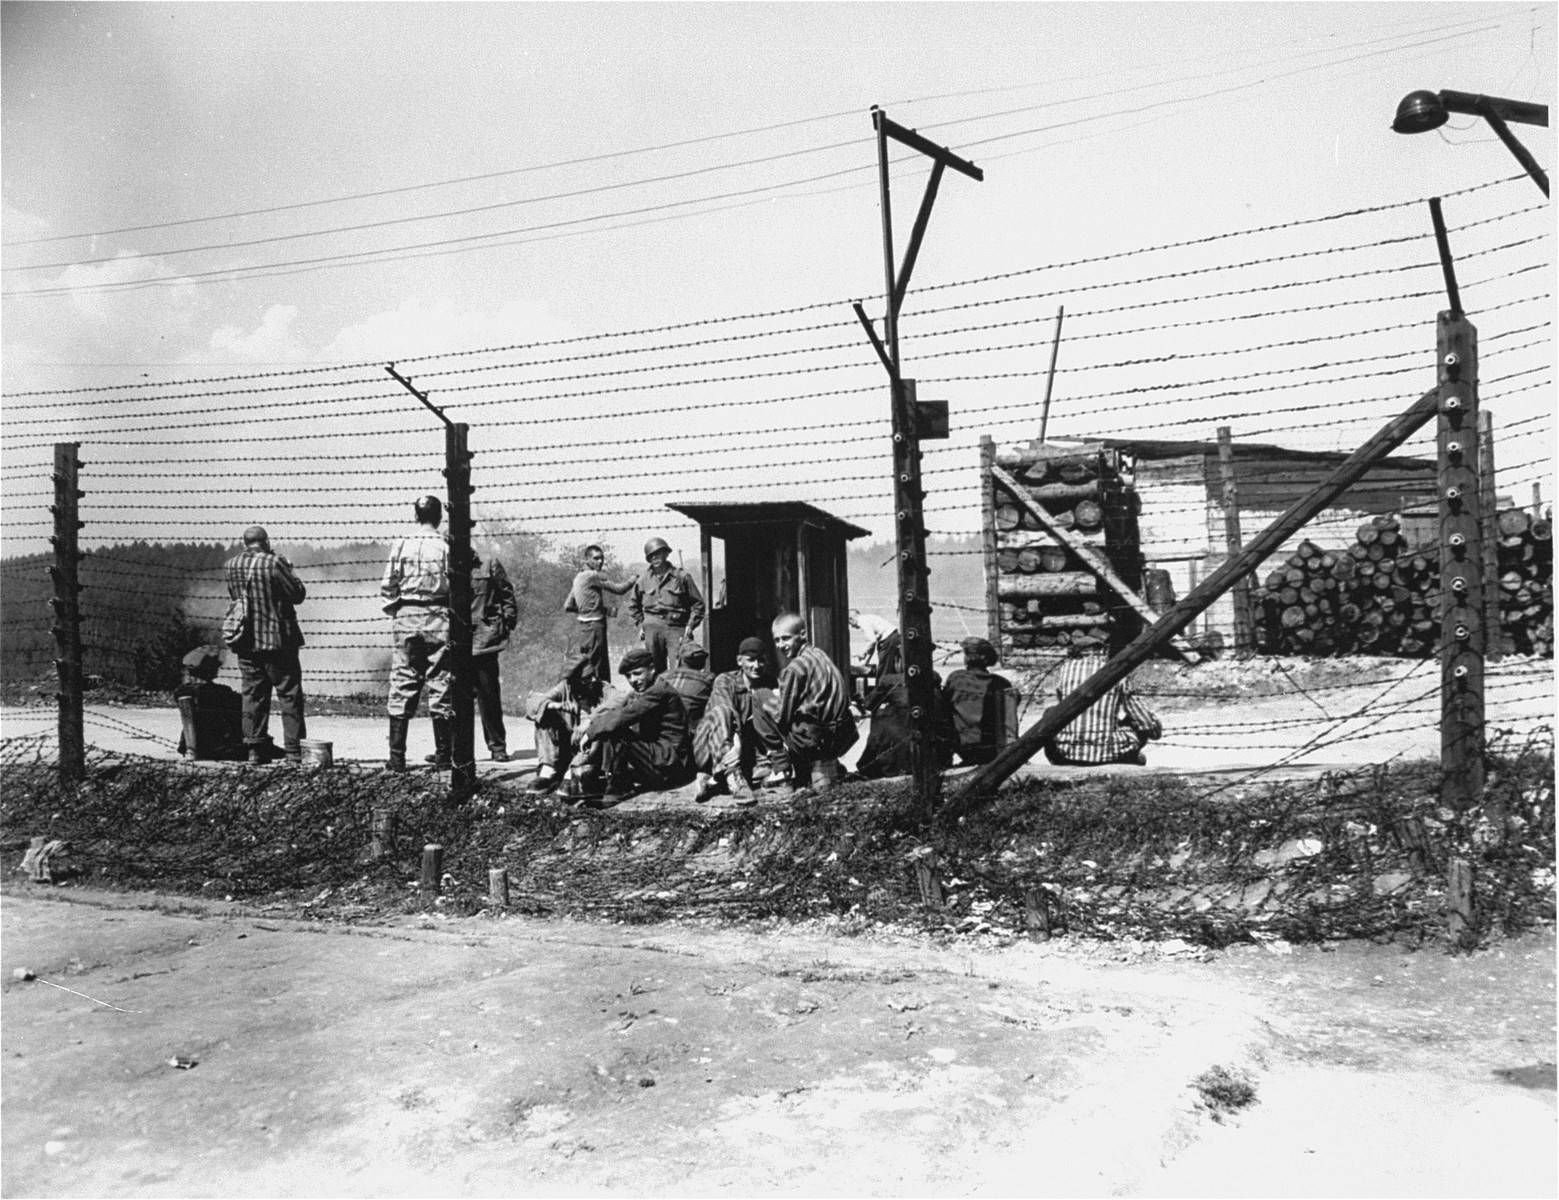 Survivors gather beside a barbed wire fence in Mauthausen while an American soldier stands guard.